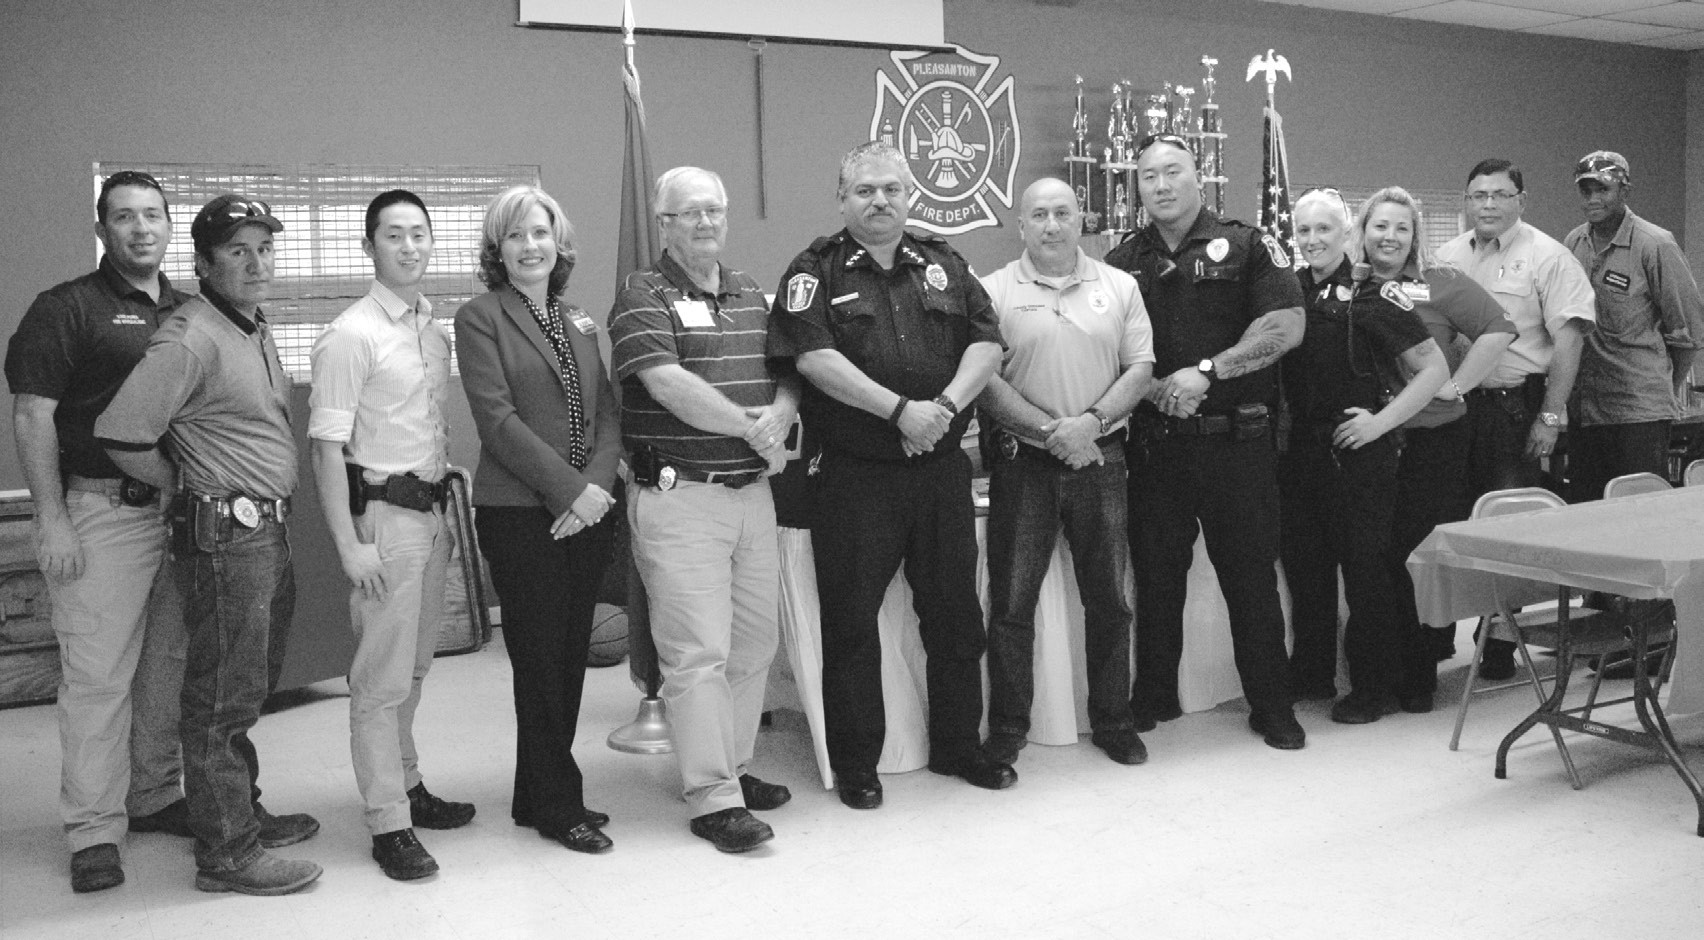 Pleasanton H-E-B honored members of the Pleasanton Fire Department and Police Department on the anniversary of 9/11 with a luncheon and ice chests filled with snack items during their annual Helping Heroes project thanking first responders for their service. Left to right are, Todd Perna, Atascosa County Emergency Management Coordinator/Fire Marshal; Jorge Quiroga, firefighter, Investigator Seth Trussell, Aubrey Smith, H-E-B Unit Director; Fire Chief Chuck Garris, Police Chief Ronald Sanchez, Capt. Johnny Gonzales, Officer Tzu- Chia, Officer Jessi Chia, Tanya Huff, H-E-B Assistant Store Director; Lt. Noe Rodriguez and Sheldon Murray, fire fighter.